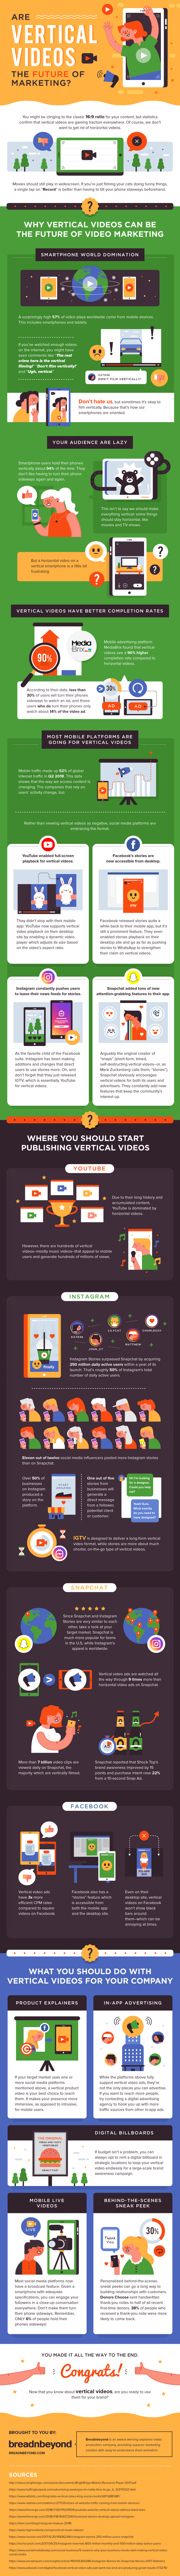 Vertical videos infographic